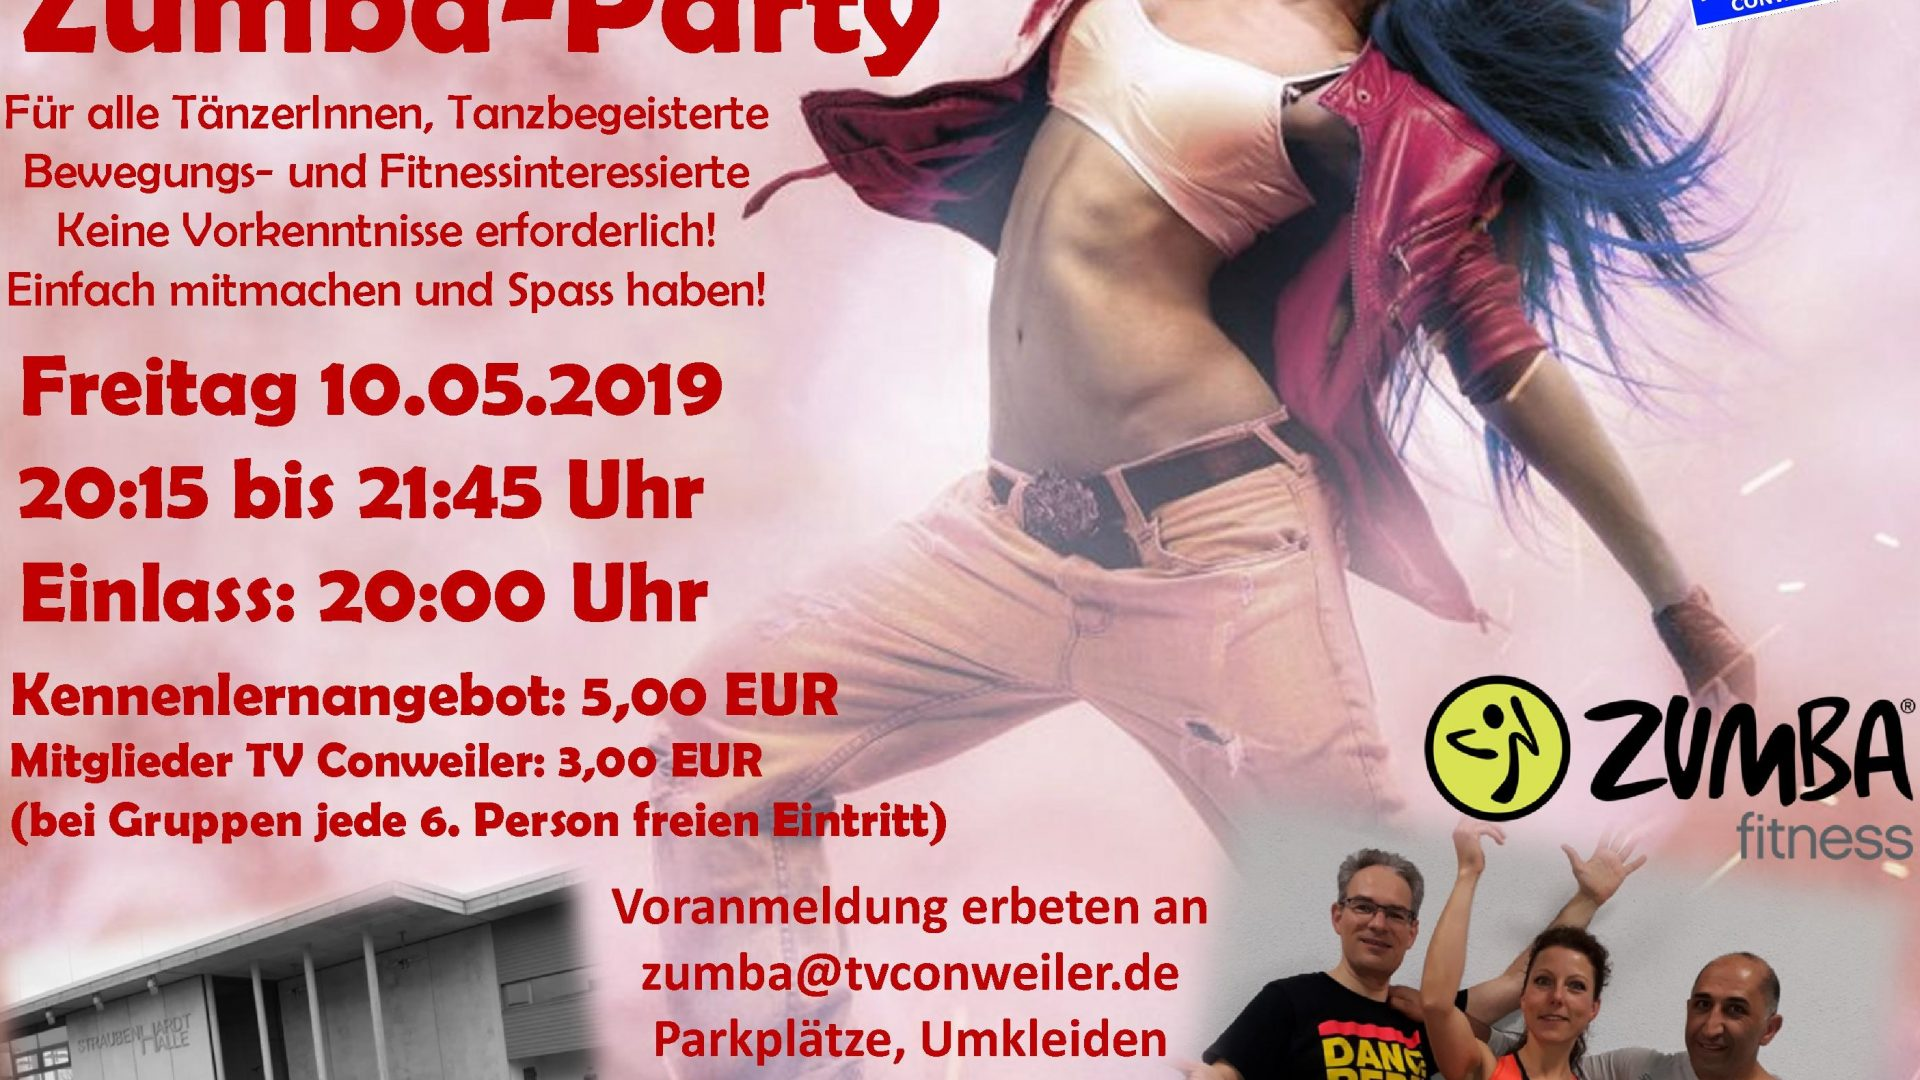 Dance- und Zumba-Party